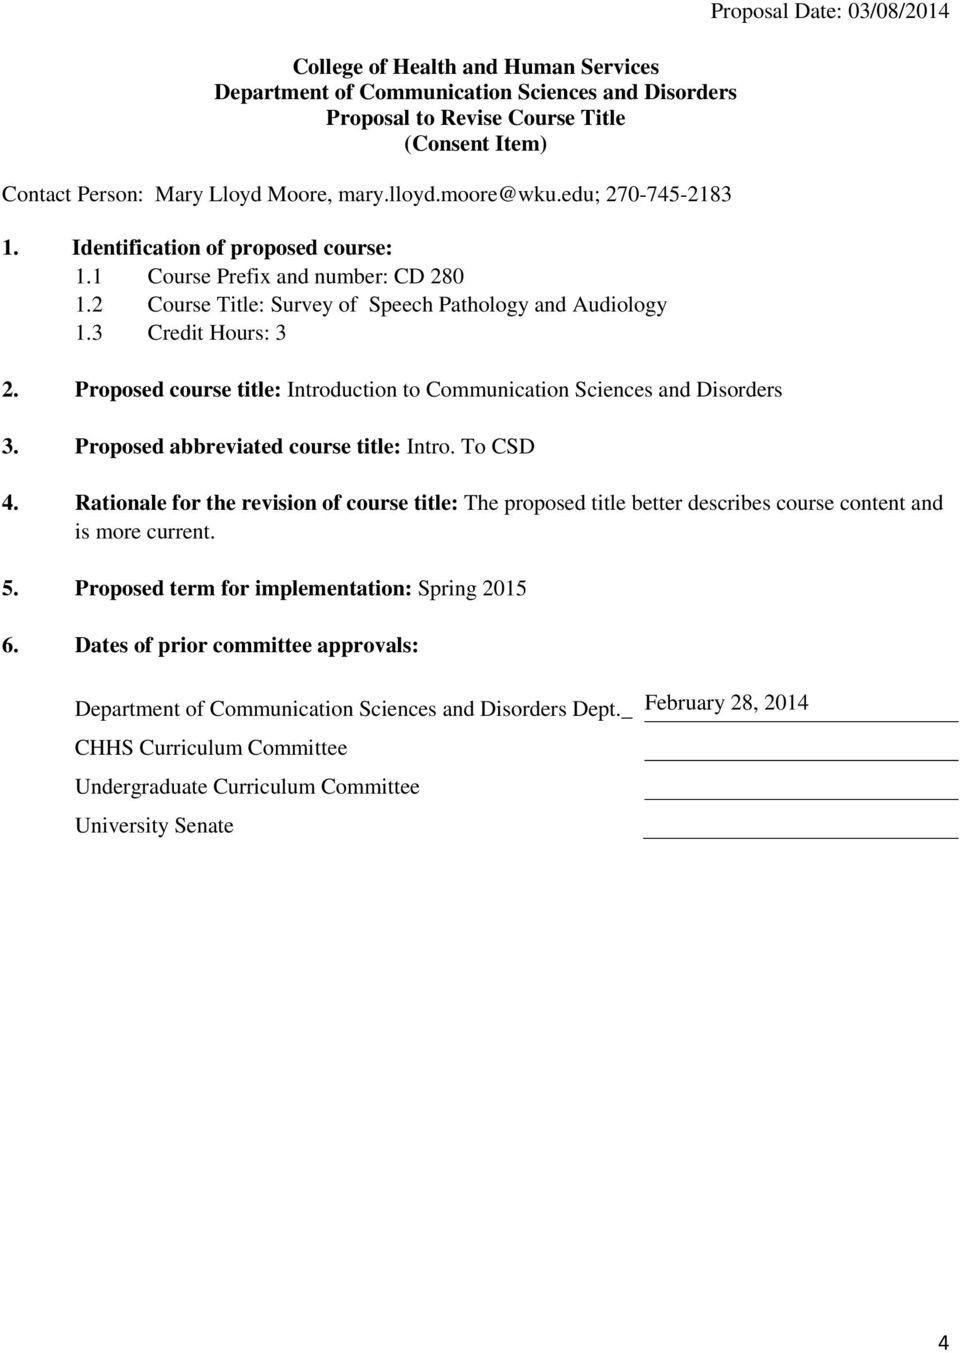 Proposed course title: Introduction to Communication Sciences and Disorders 3. Proposed abbreviated course title: Intro. To CSD Proposal Date: 03/08/2014 4.